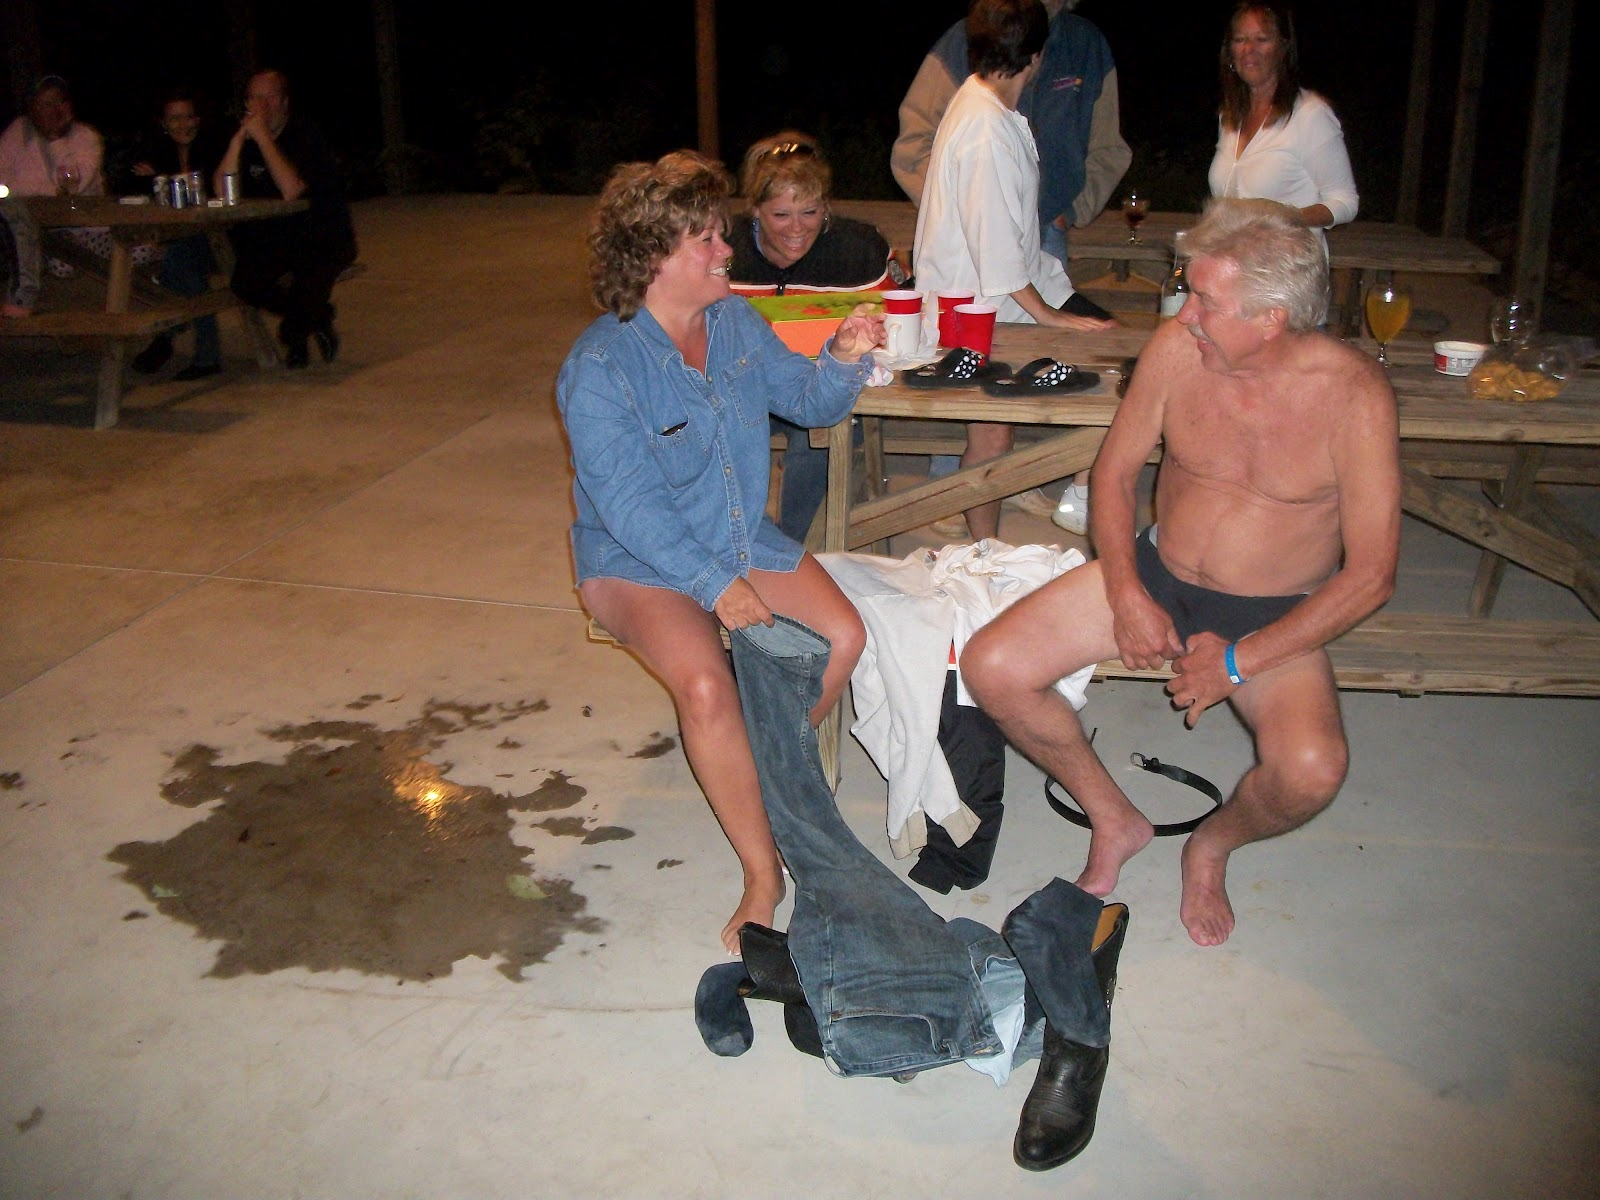 southern comfort - cowboy's journal >: east coast sturgis, event of